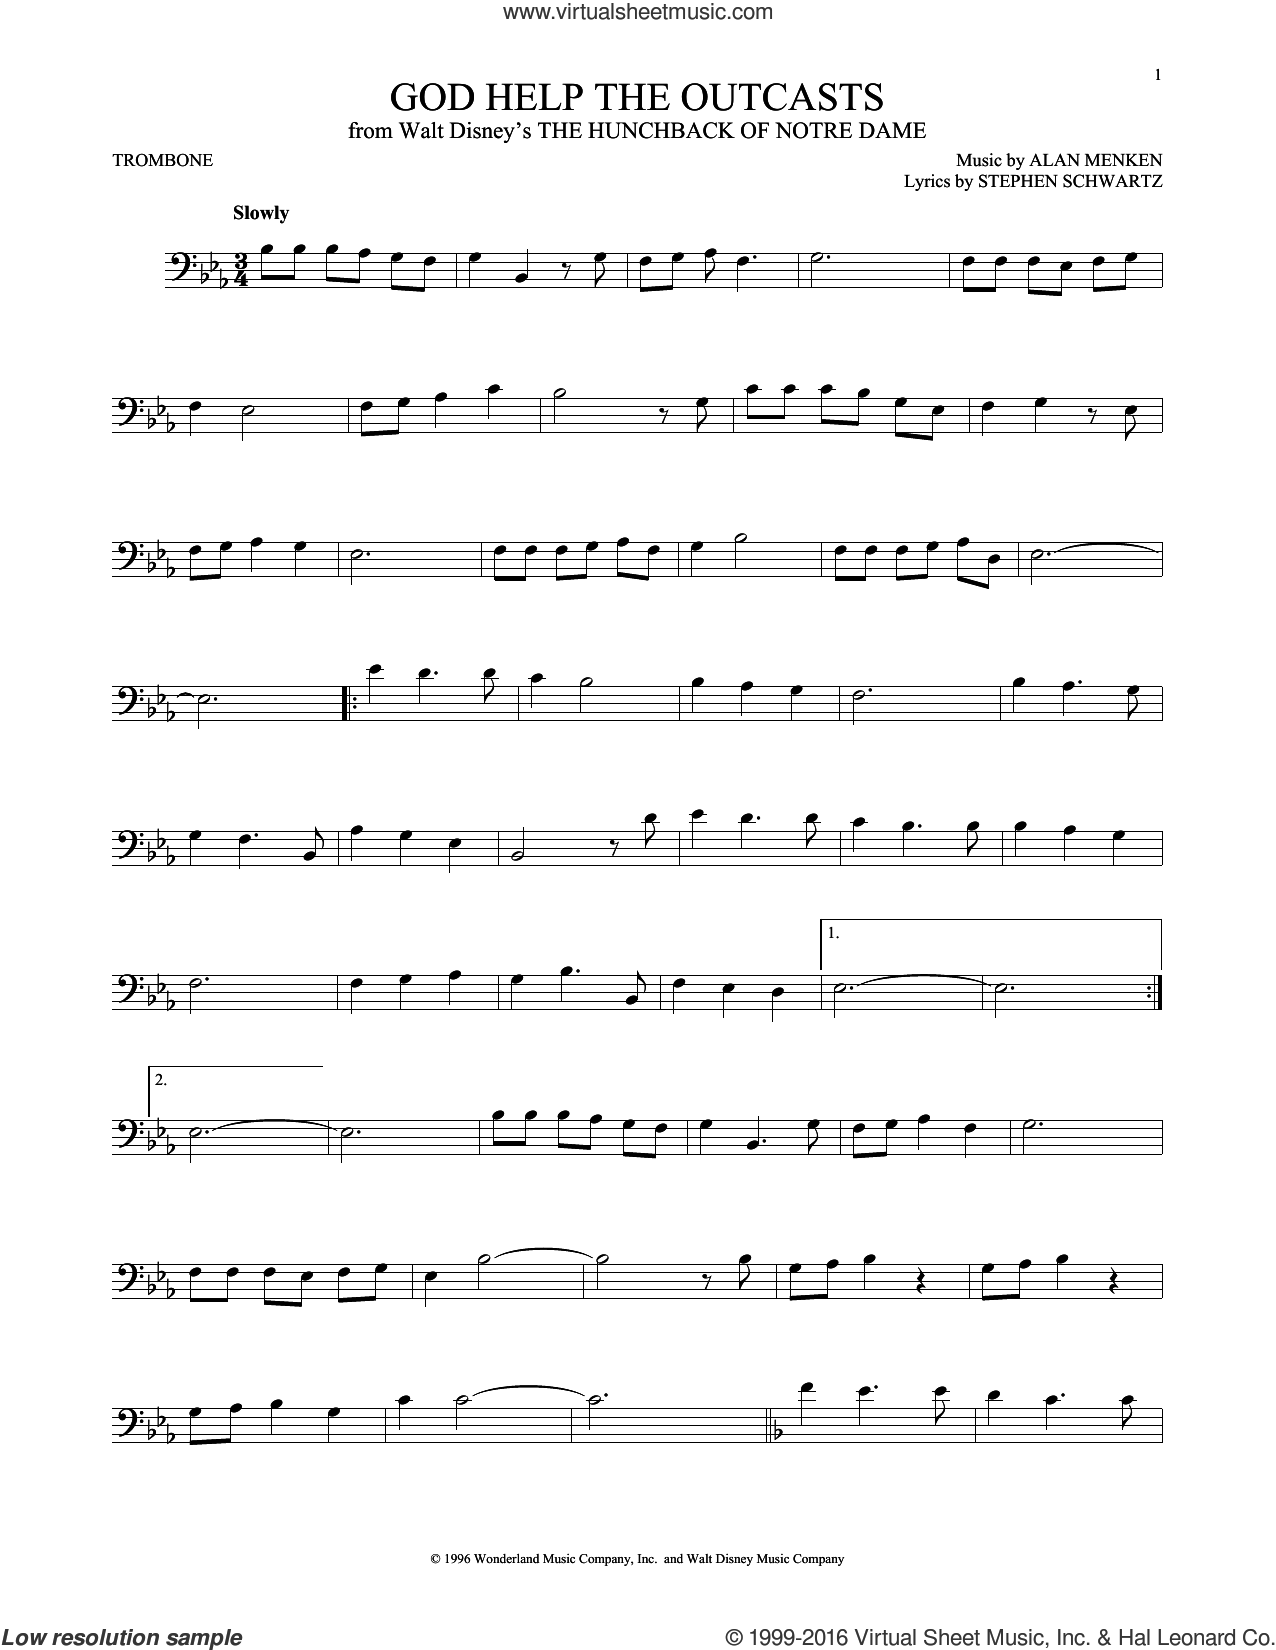 God Help The Outcasts sheet music for trombone solo by Bette Midler, Alan Menken and Stephen Schwartz, intermediate skill level